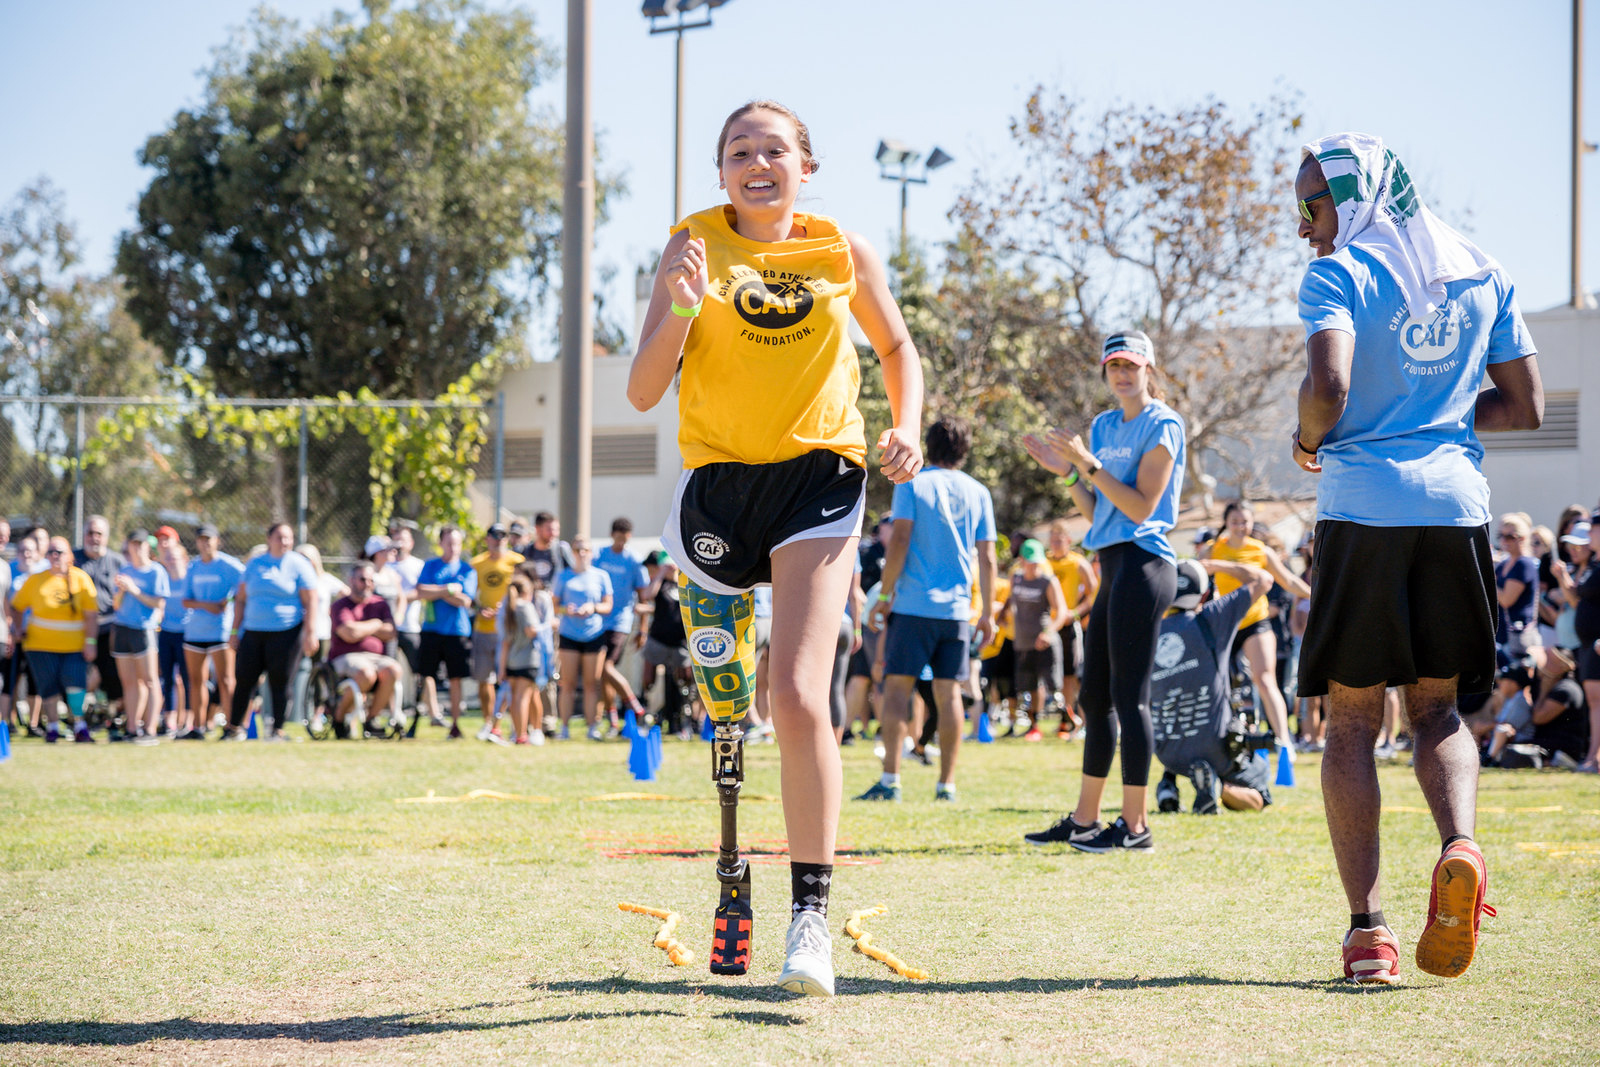 Adelynn Klundby Ossur Running and Mobility Clinic in San Diego